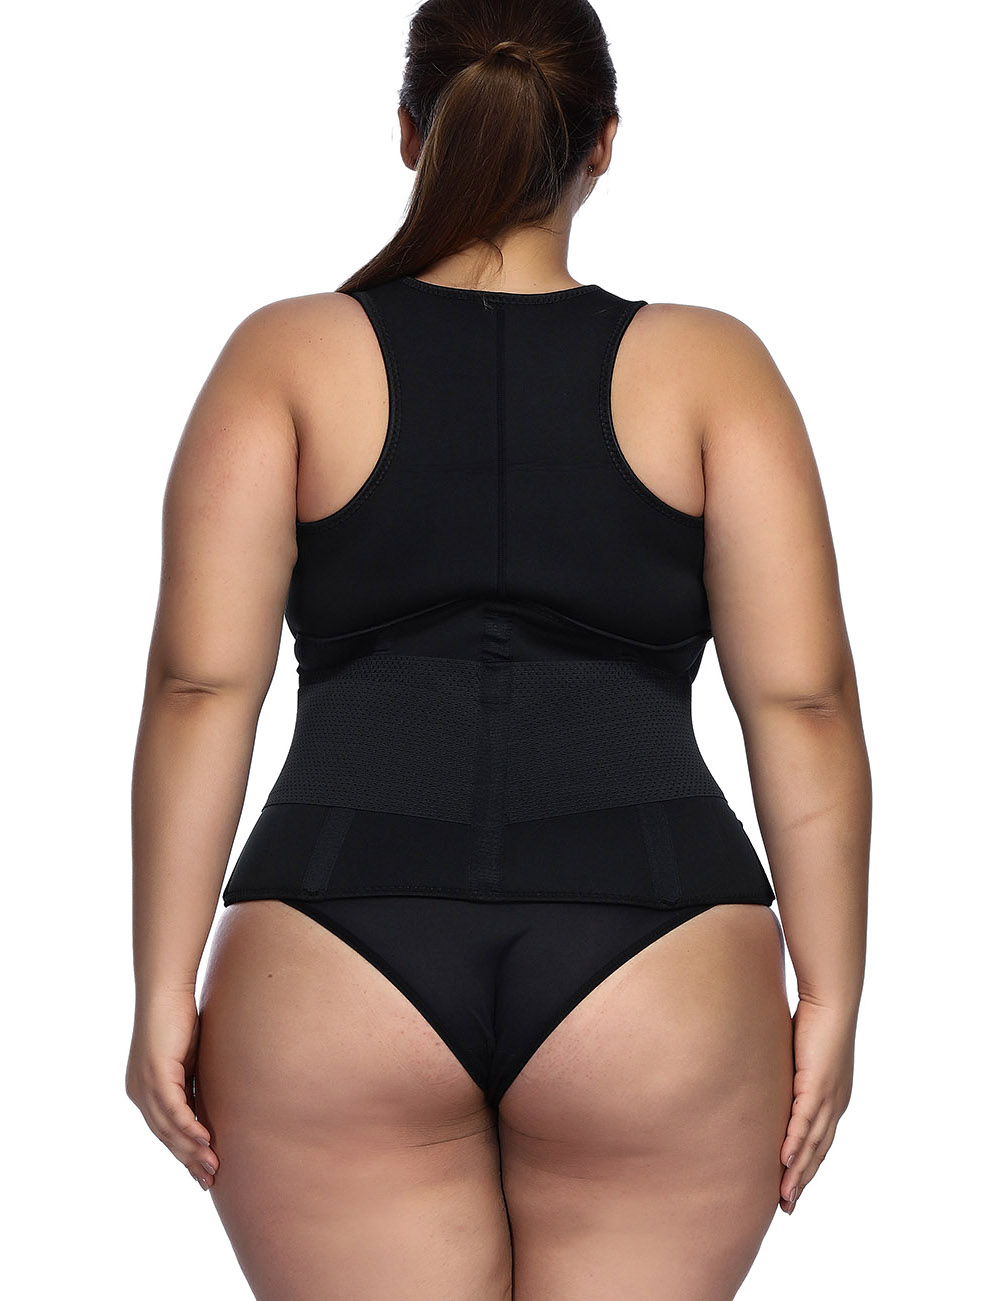 //cdn.affectcloud.com/hexinfashion/upload/imgs/Shapewear/Neoprene_Waist_Trainer/B180078-BK1/B180078-BK1-201911115dc8be4206322.jpg